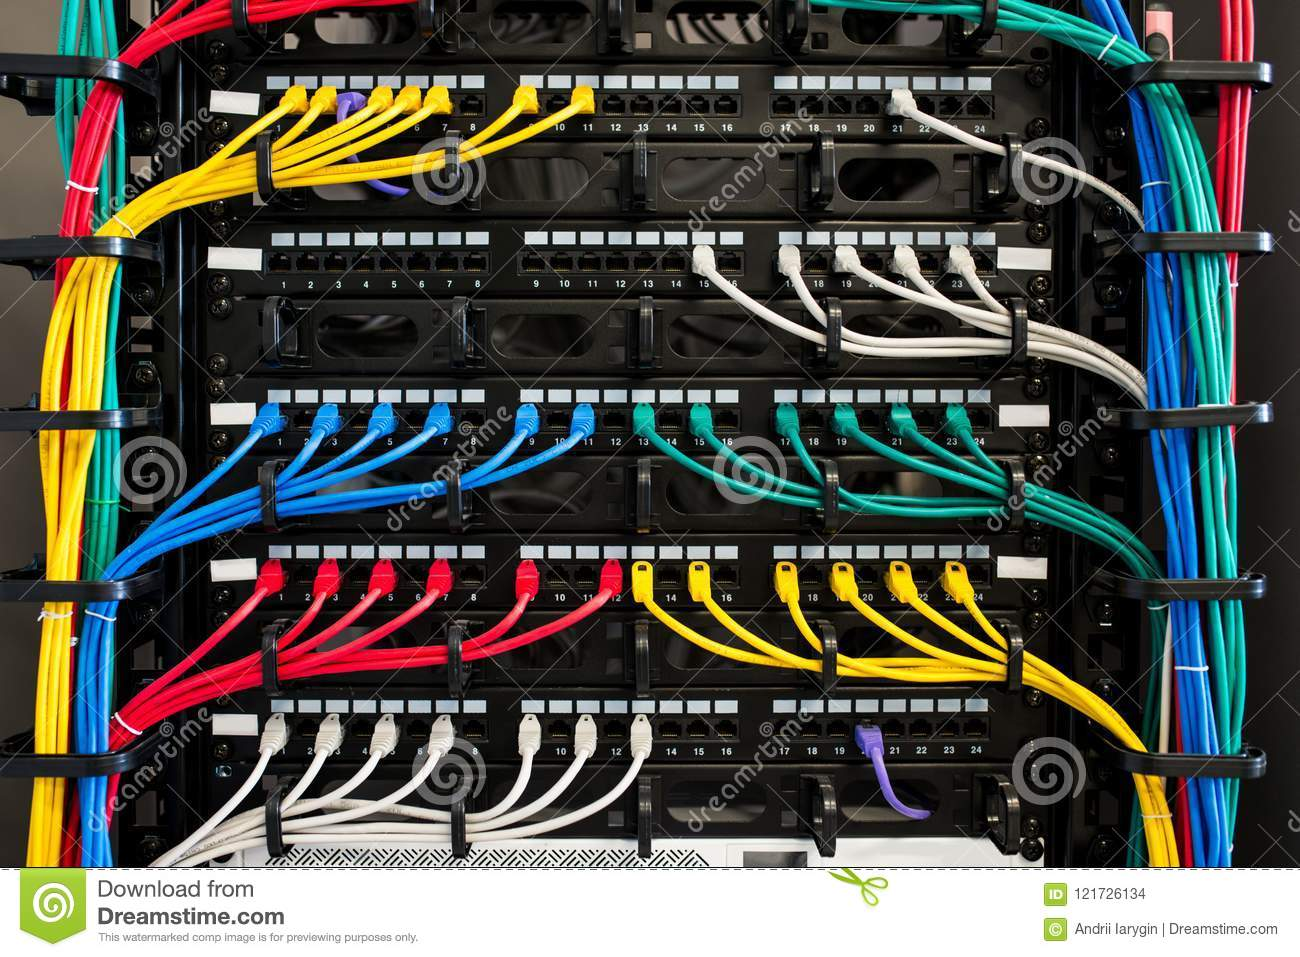 Server and wires